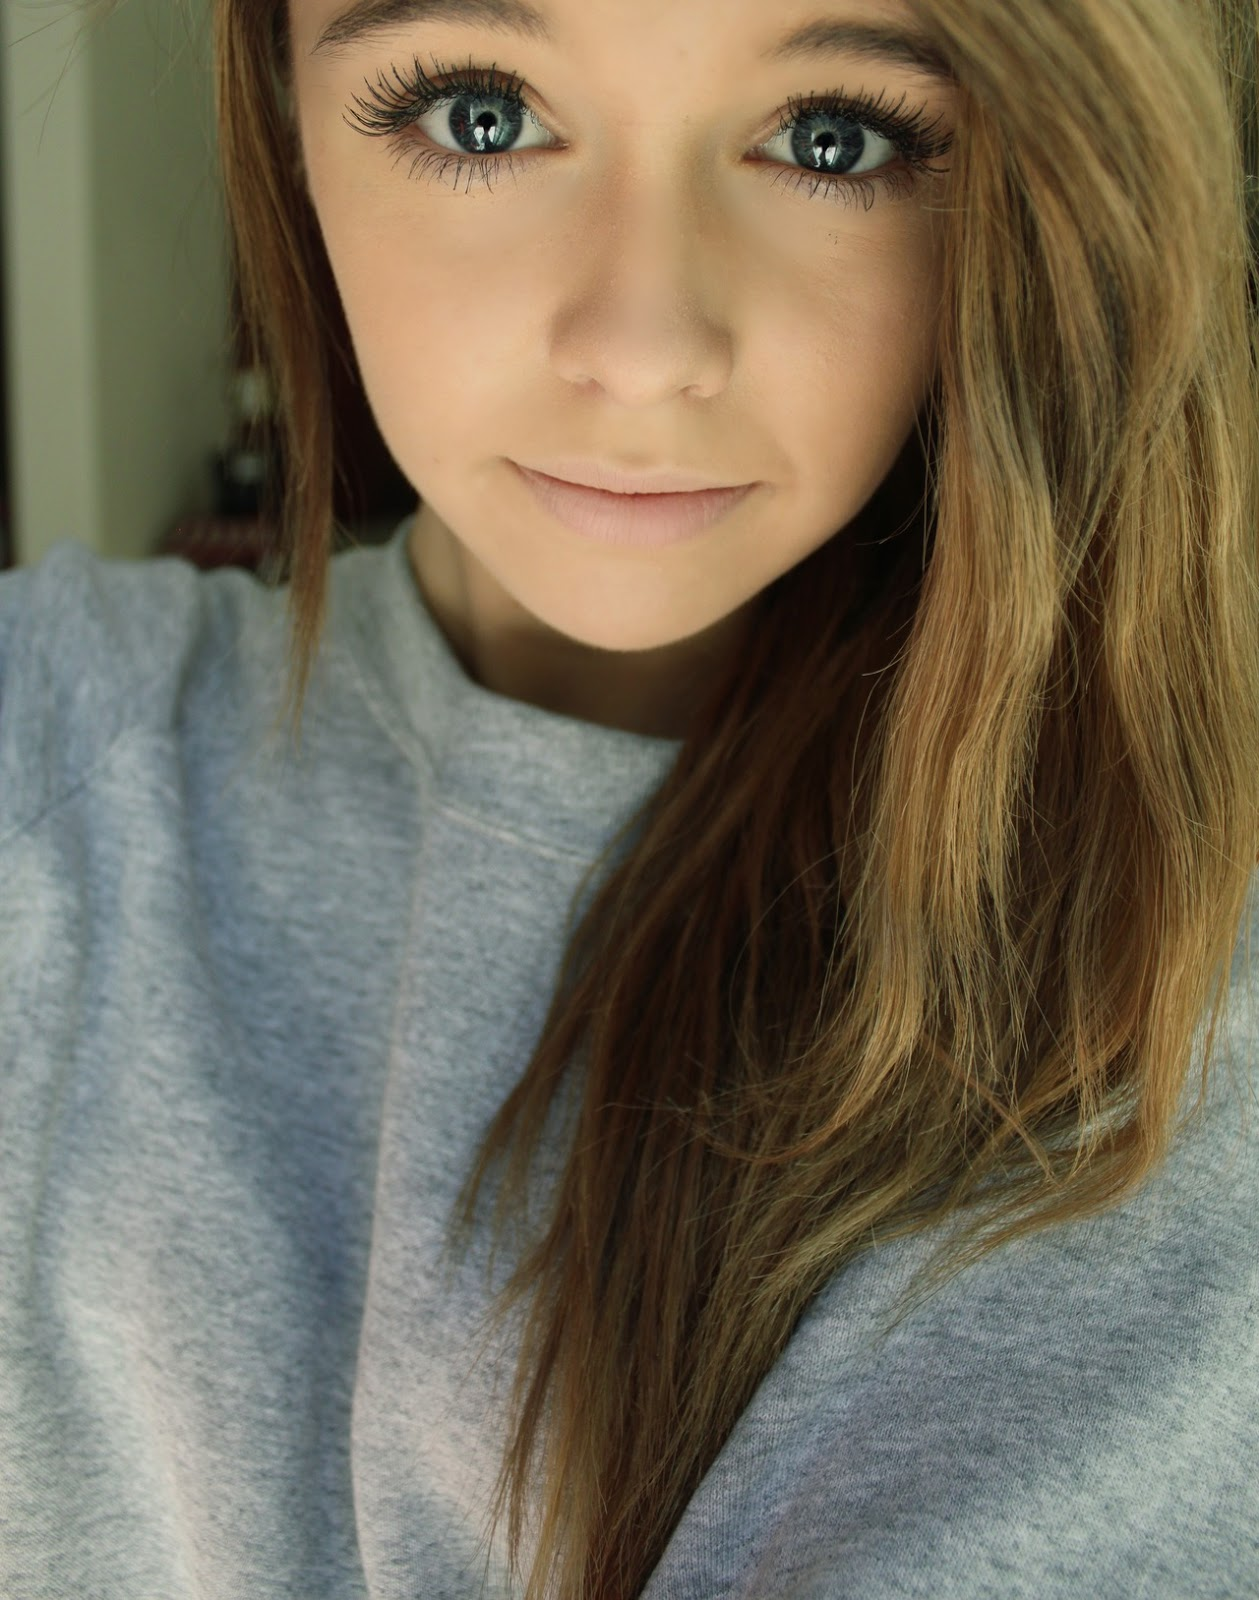 Cute 15 Year Old Girl Images Usseek Com: Acacia Brinley: March 2013